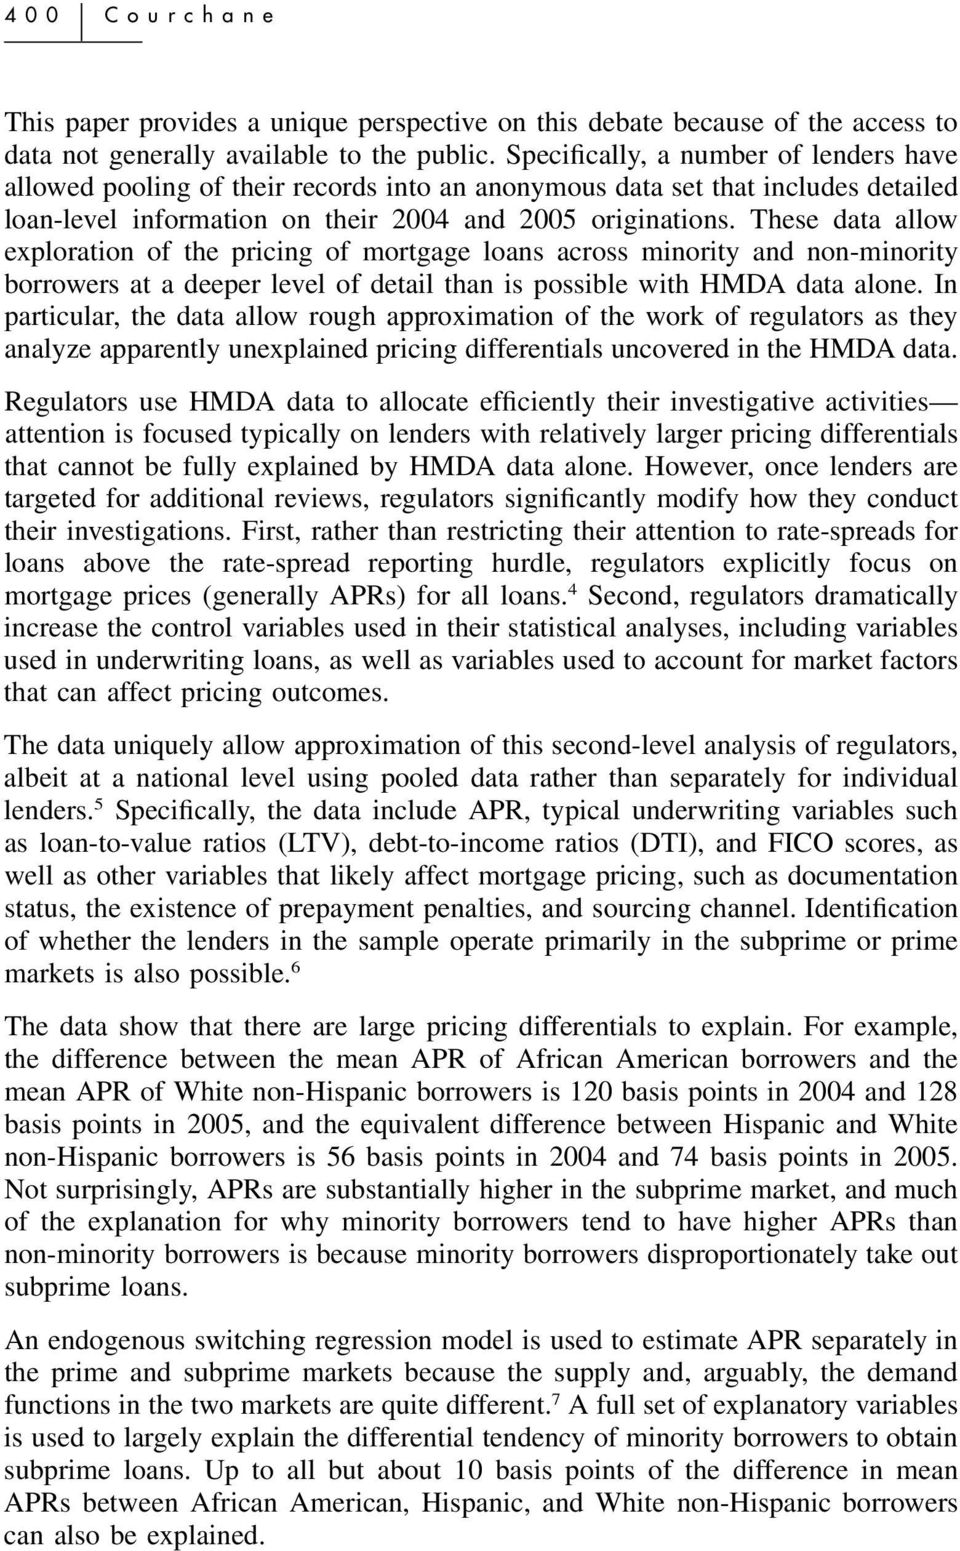 These data allow exploration of the pricing of mortgage loans across minority and non-minority borrowers at a deeper level of detail than is possible with HMDA data alone.